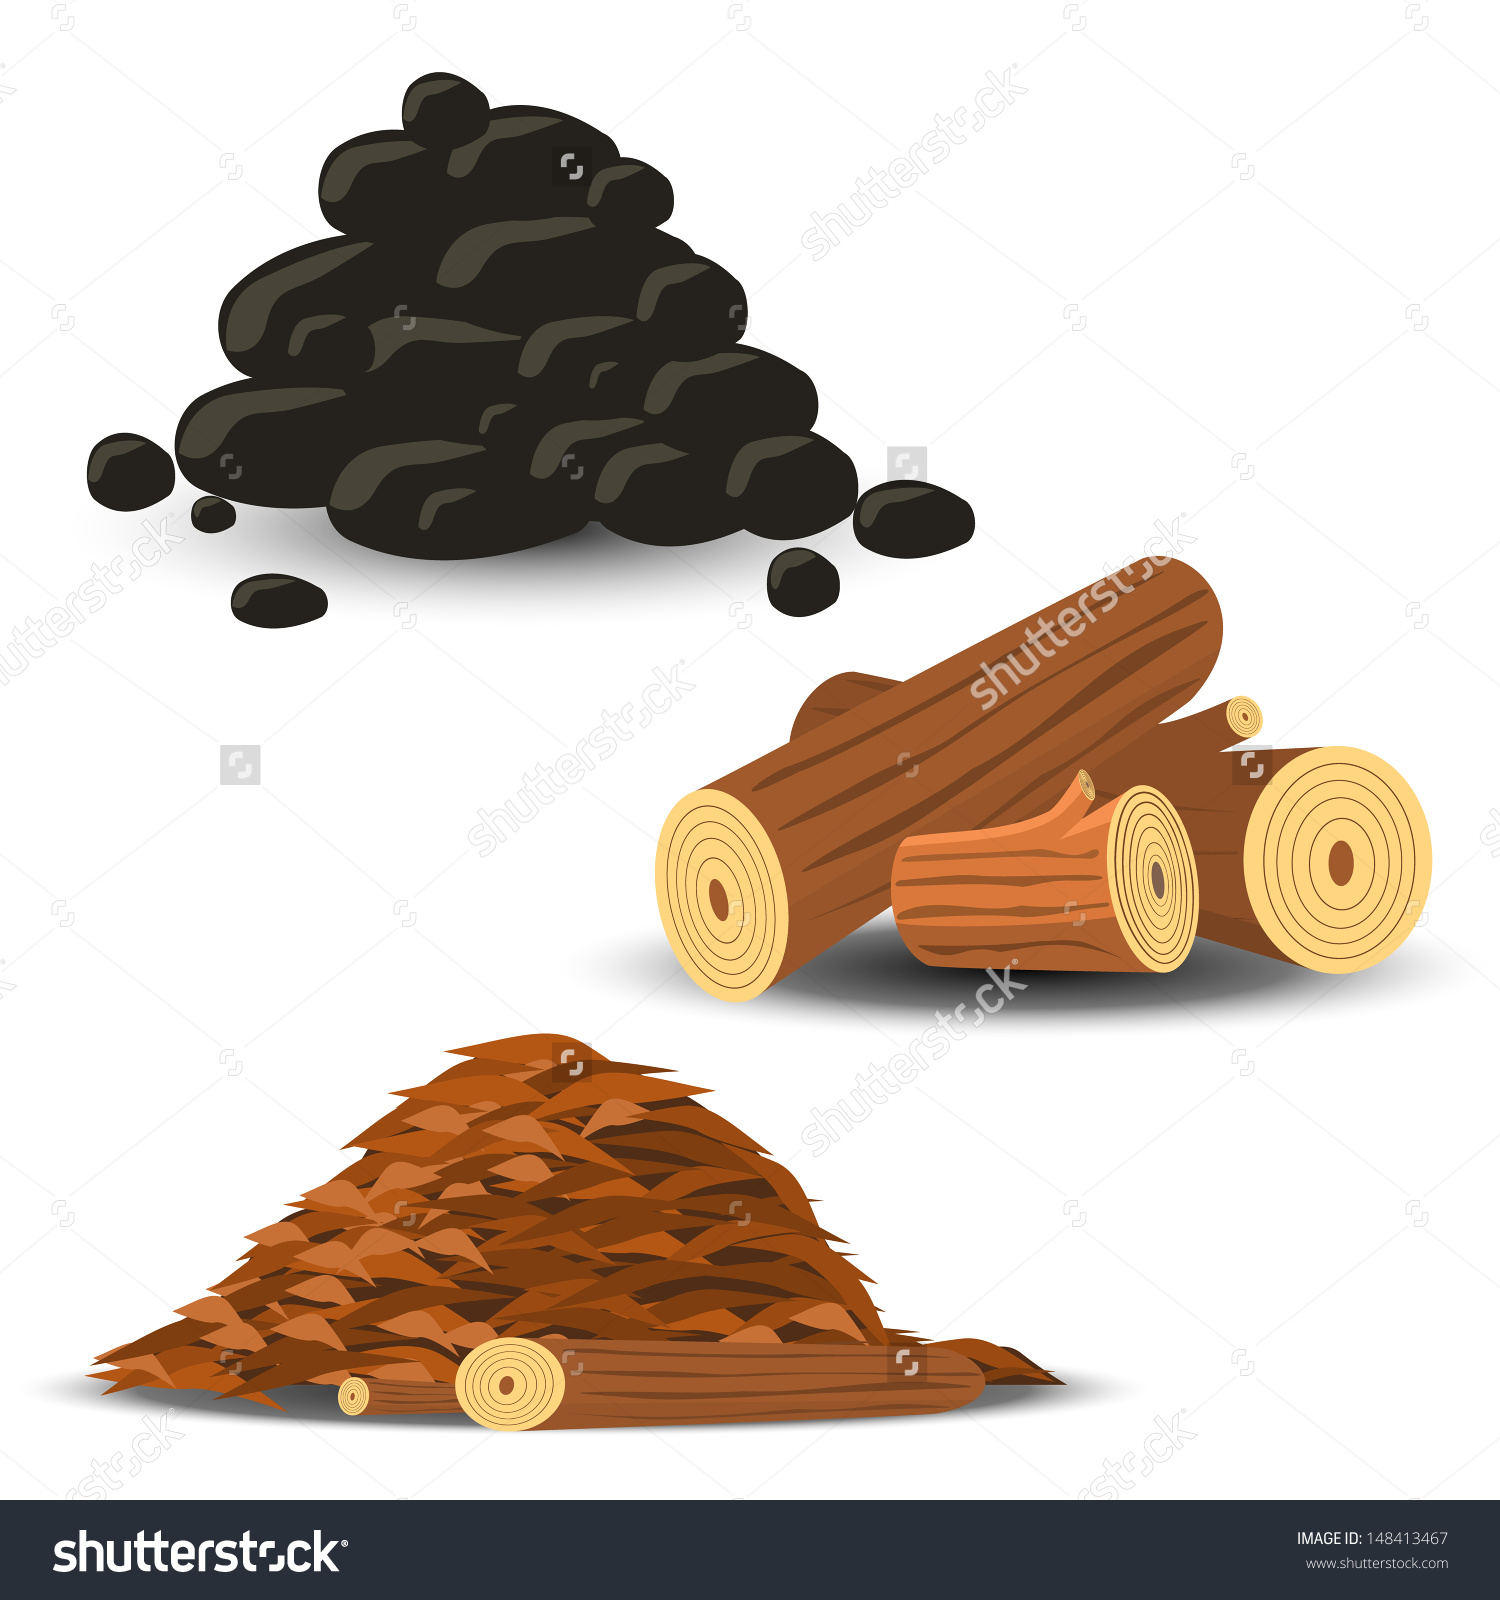 Firewood Wood Chips Coal Stock Vector 148413467.